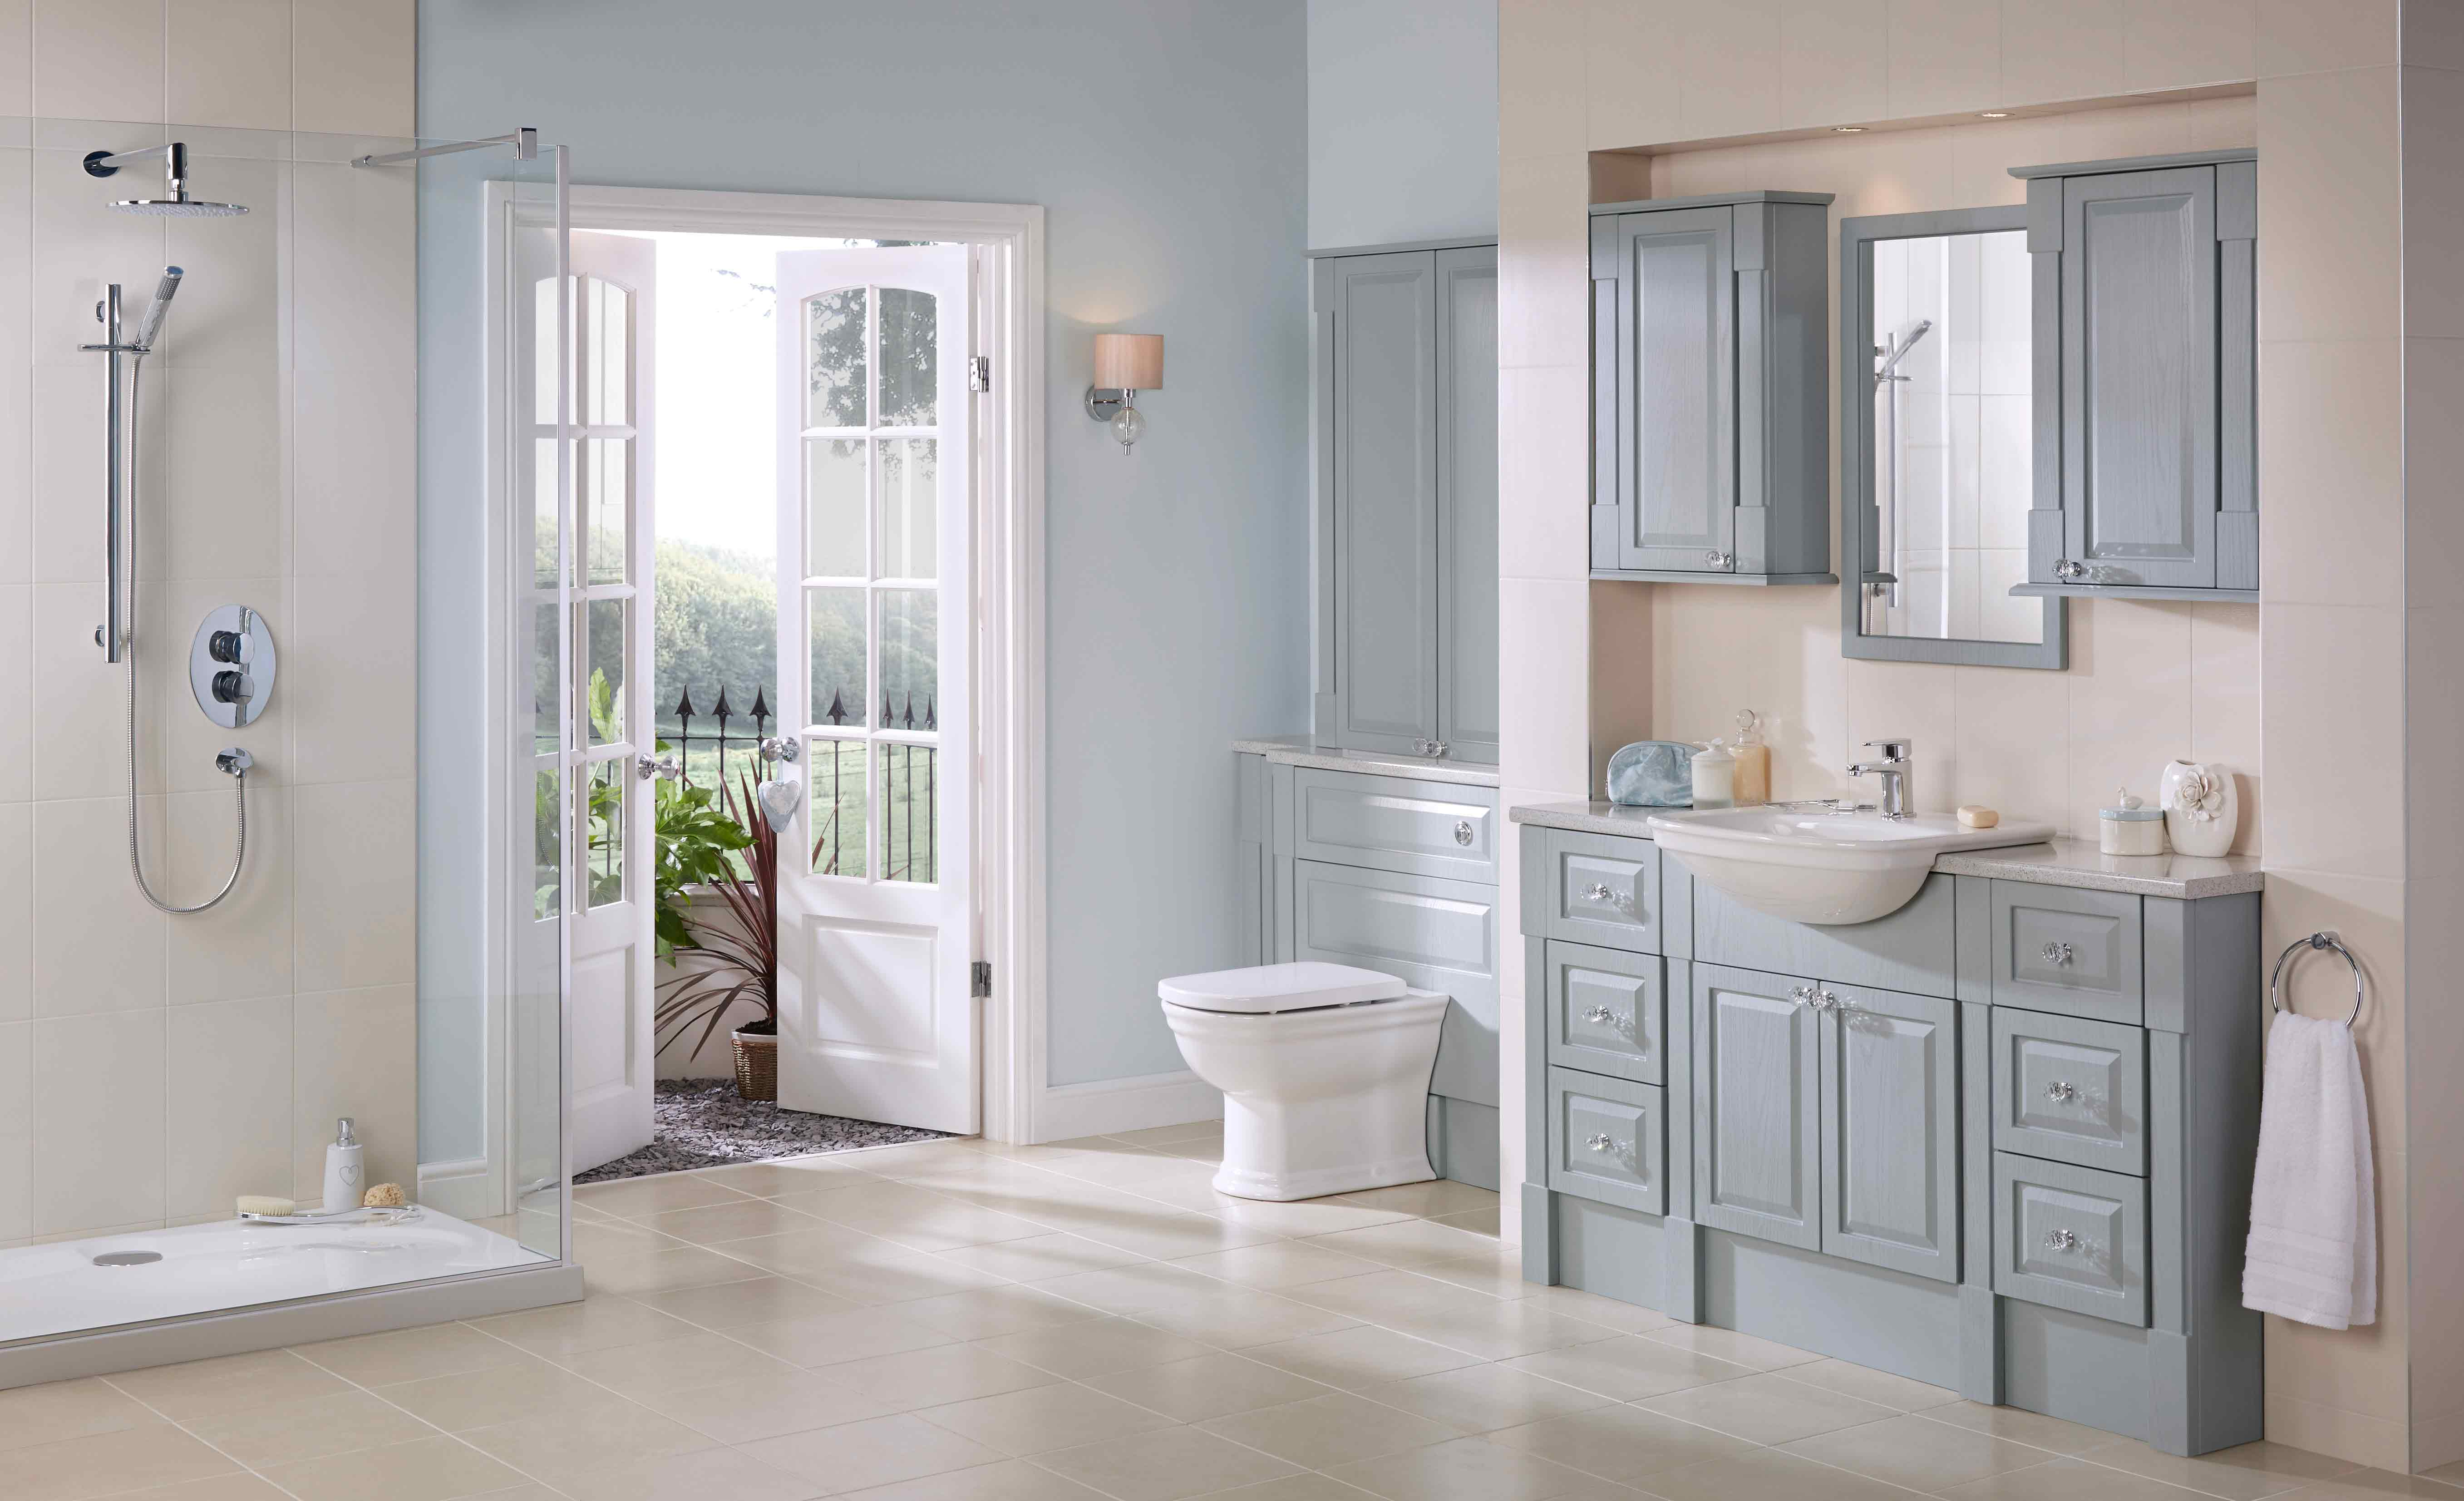 Fitted bathroom prices in bickershaw